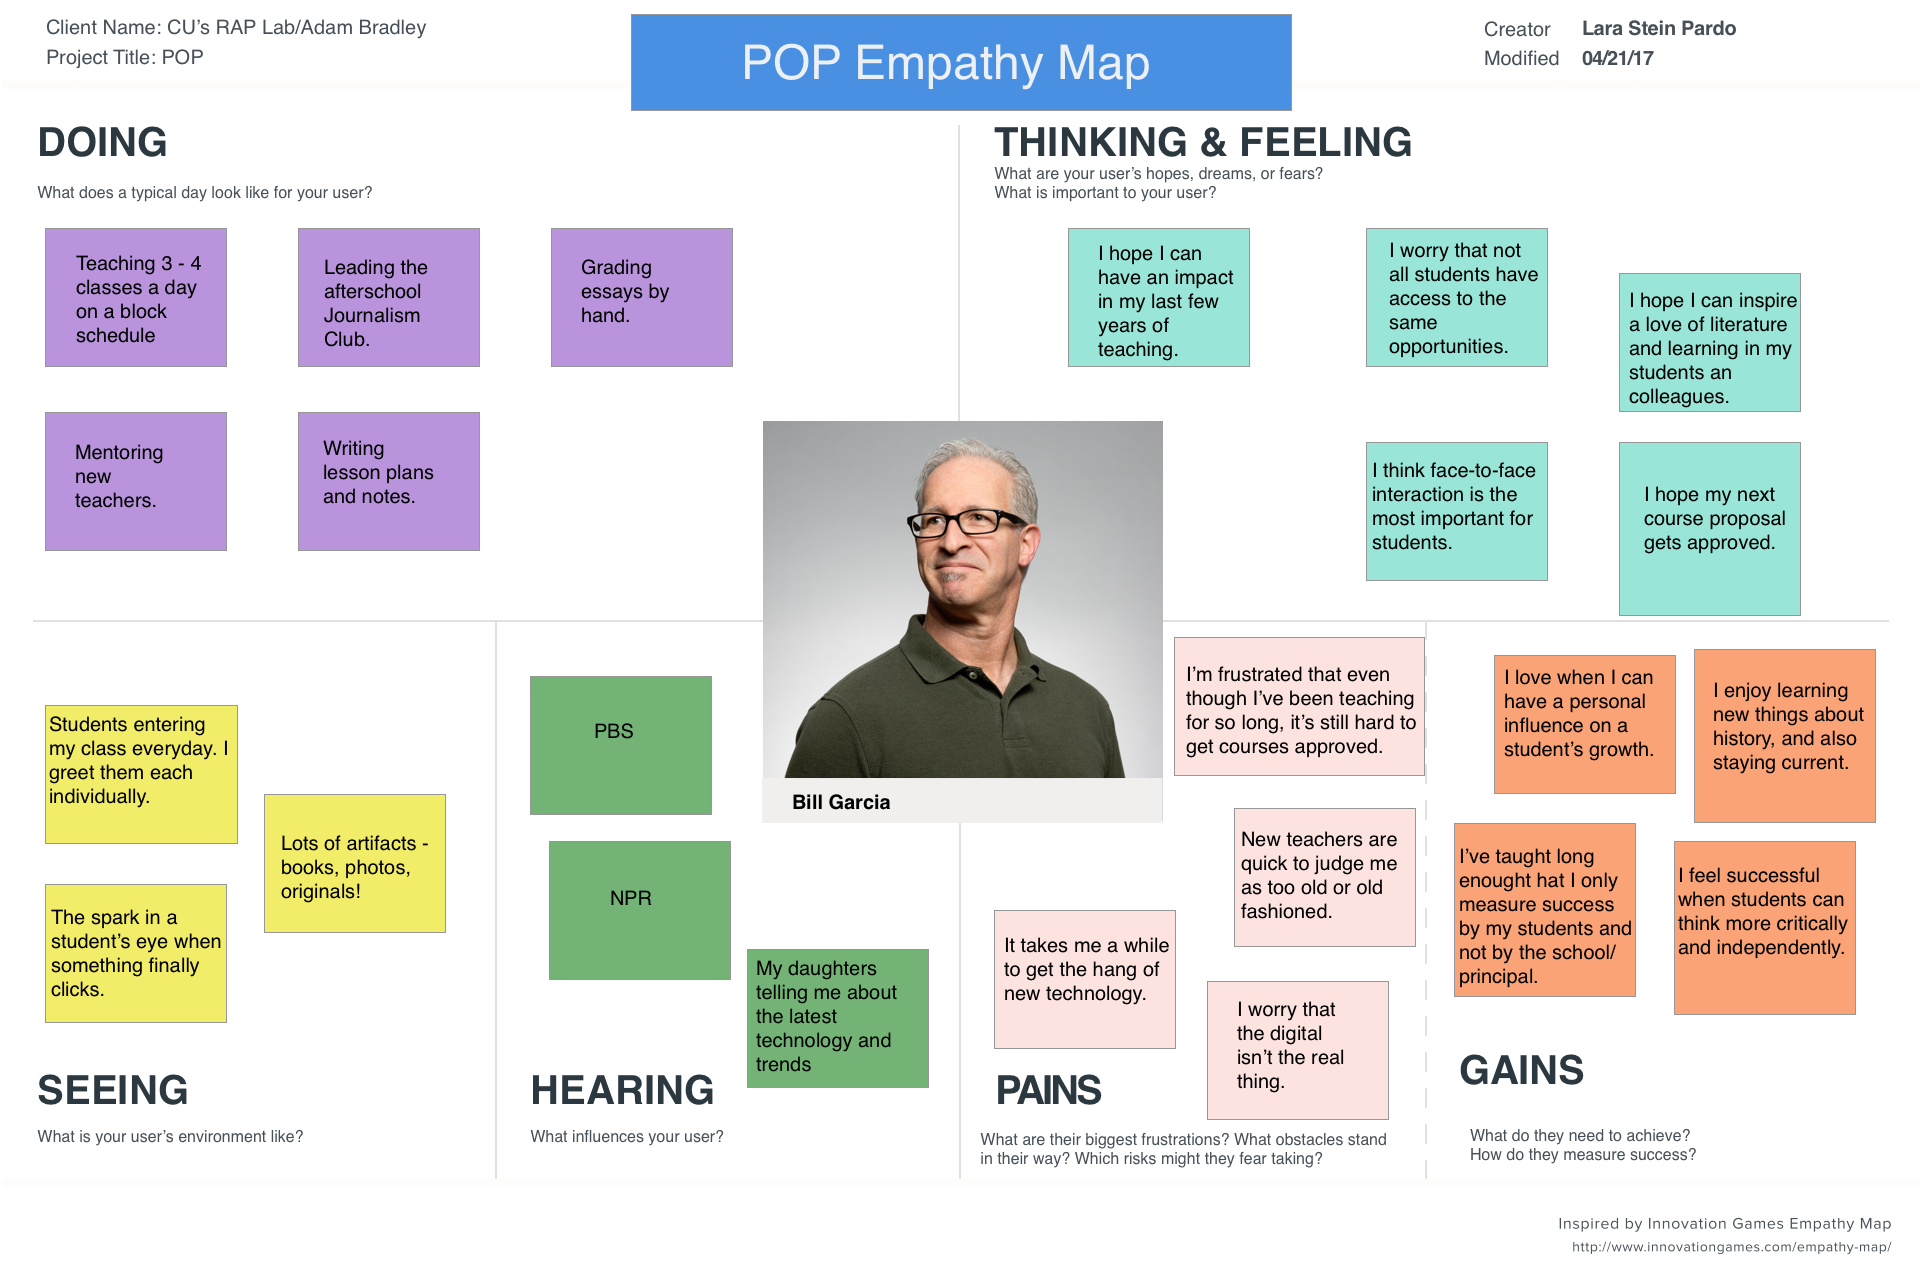 POP-EmpathyMap-Bill.png